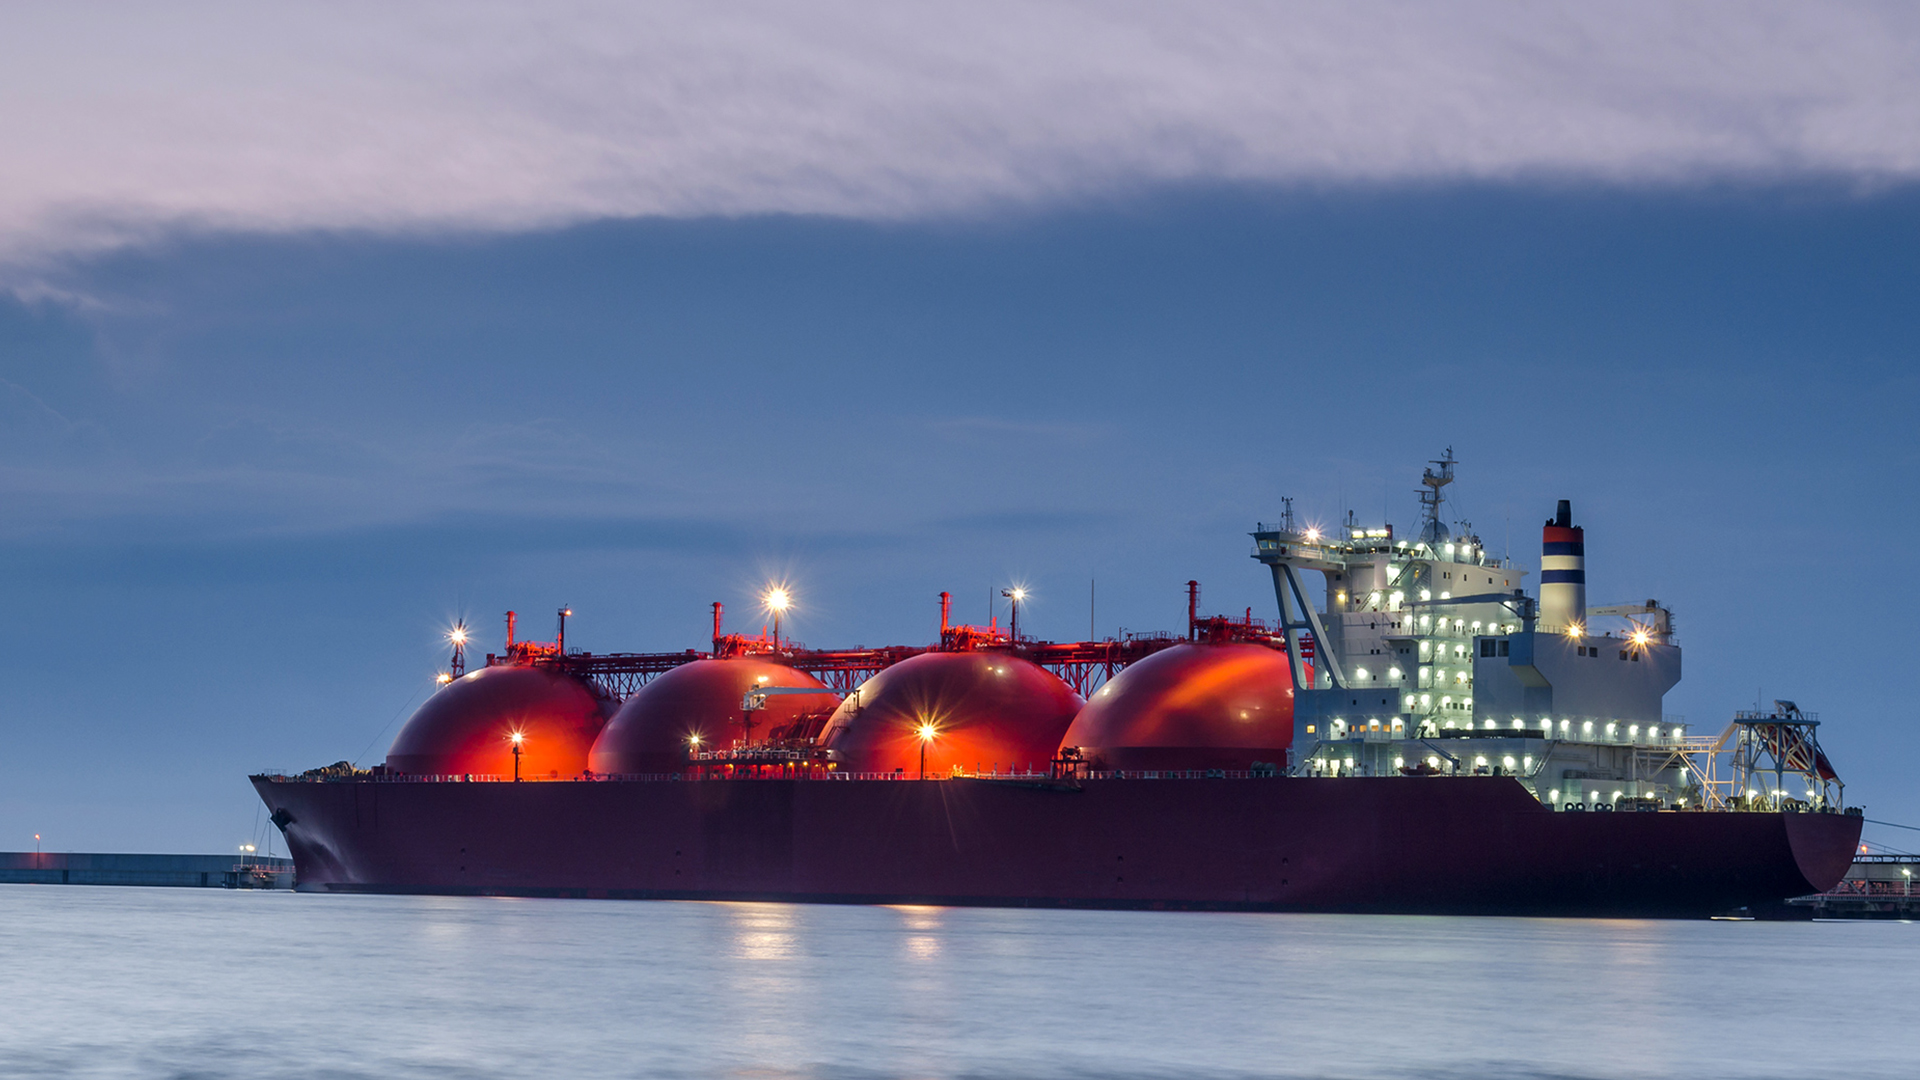 Exploring new shores: Transporting LNG from Canada by ship | Global law  firm | Norton Rose Fulbright